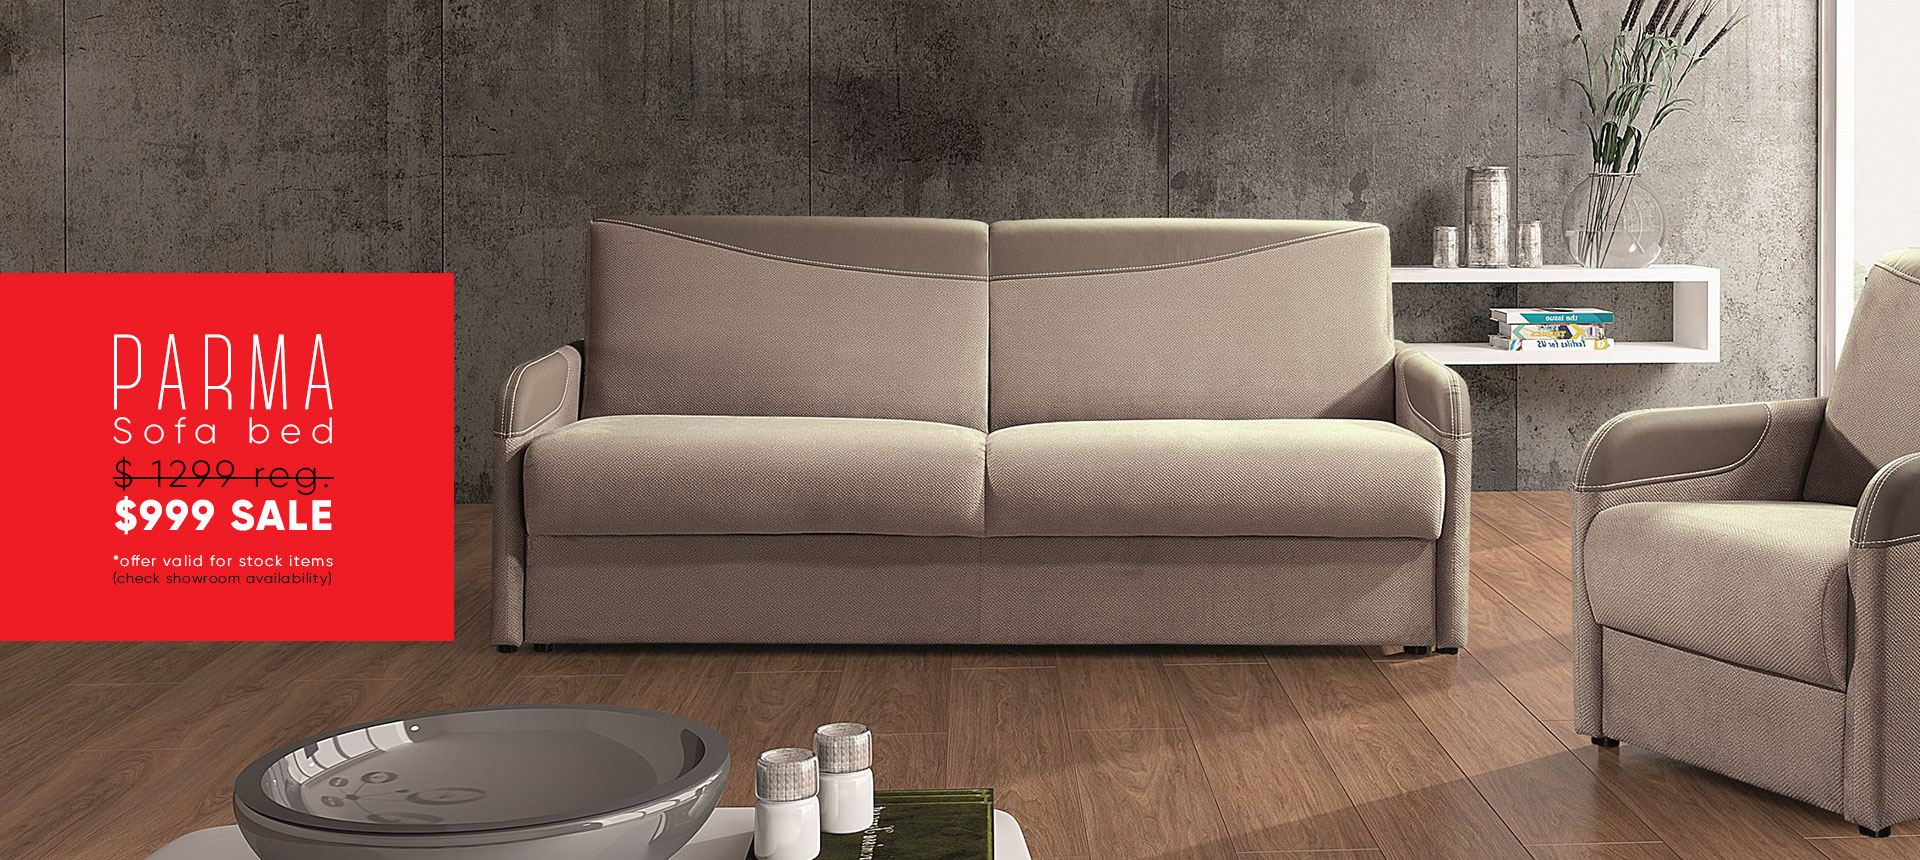 Parma Sofa Bed - $1599 sale - Online store Smart Furniture Mississauga